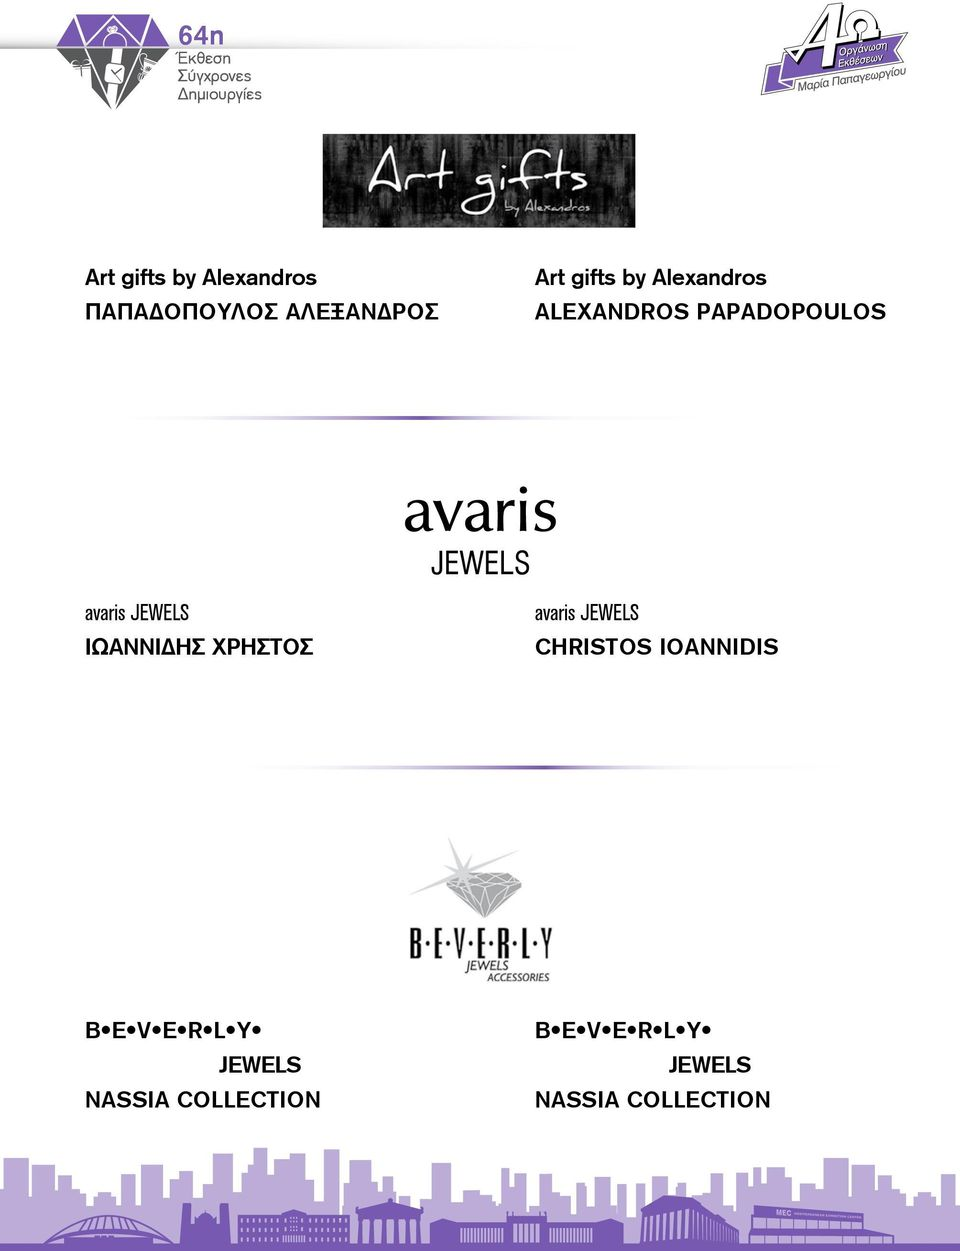 ΙΩΑΝΝΙΔΗΣ ΧΡΗΣΤΟΣ avaris JEWELS CHRISTOS IOANNIDIS B E V E